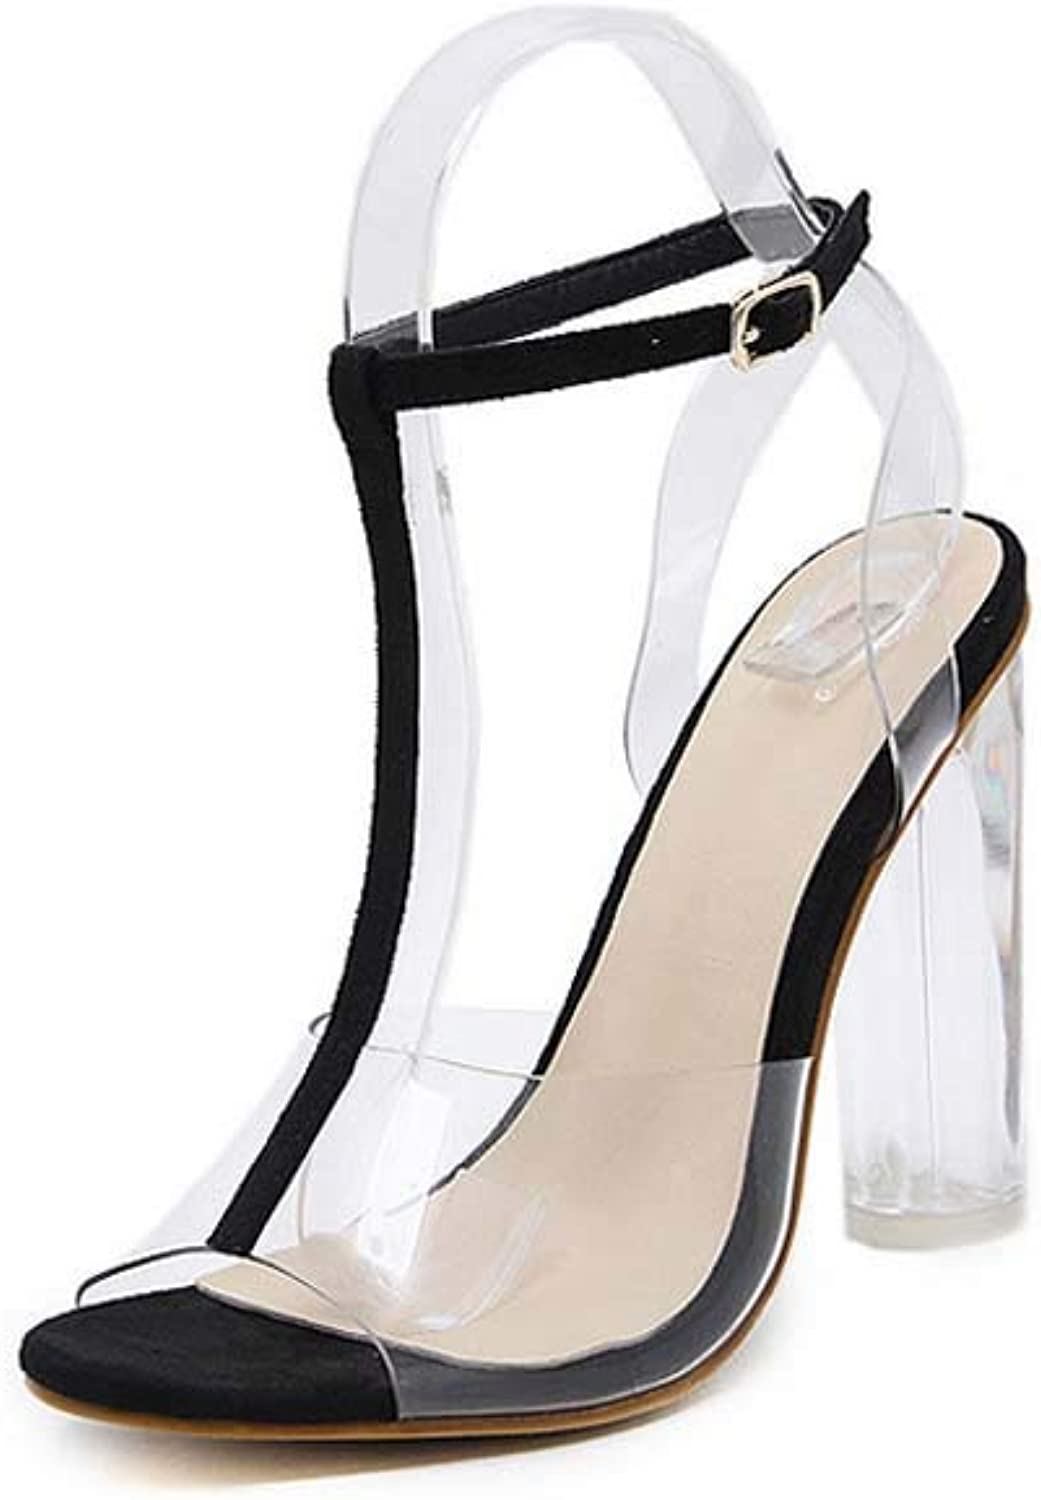 Spring Womens Transparent Open Toe Sandals,Fashion Pointed Pumps Perspex Block Heels Wedding,Dress,Party shoes